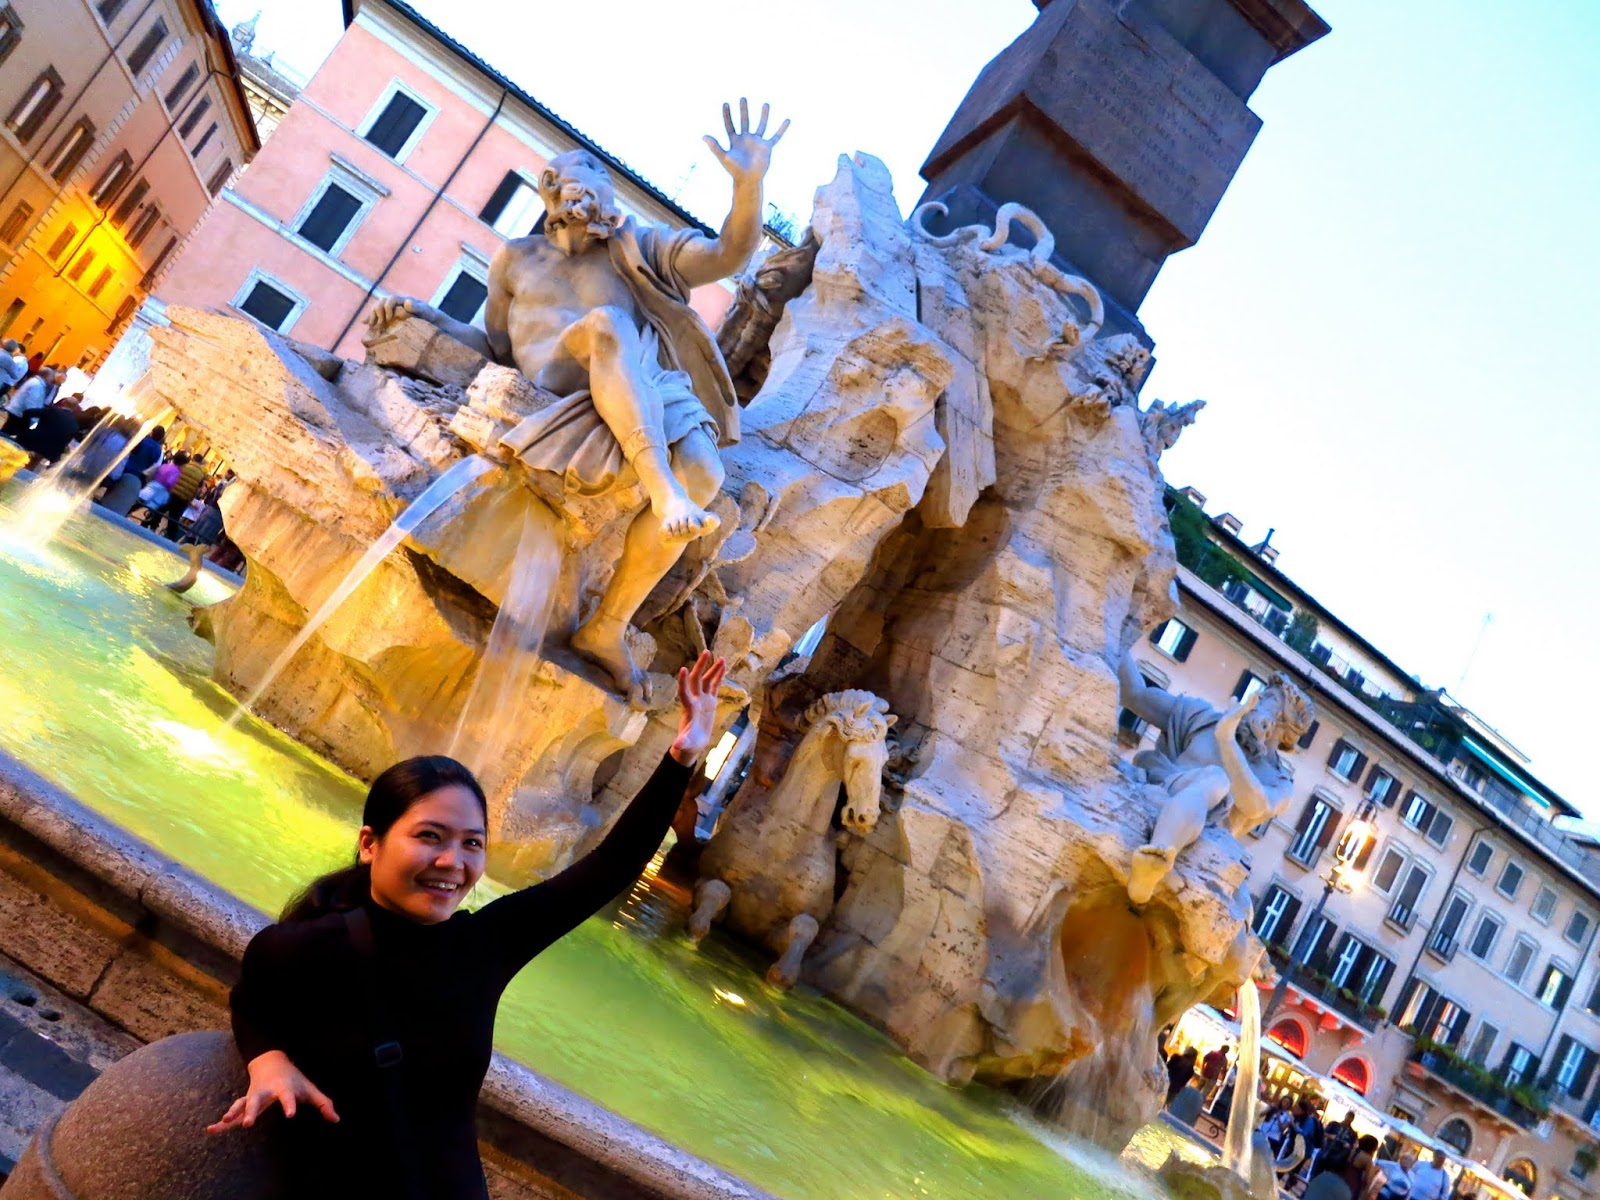 Fountain in Piazza, Navona